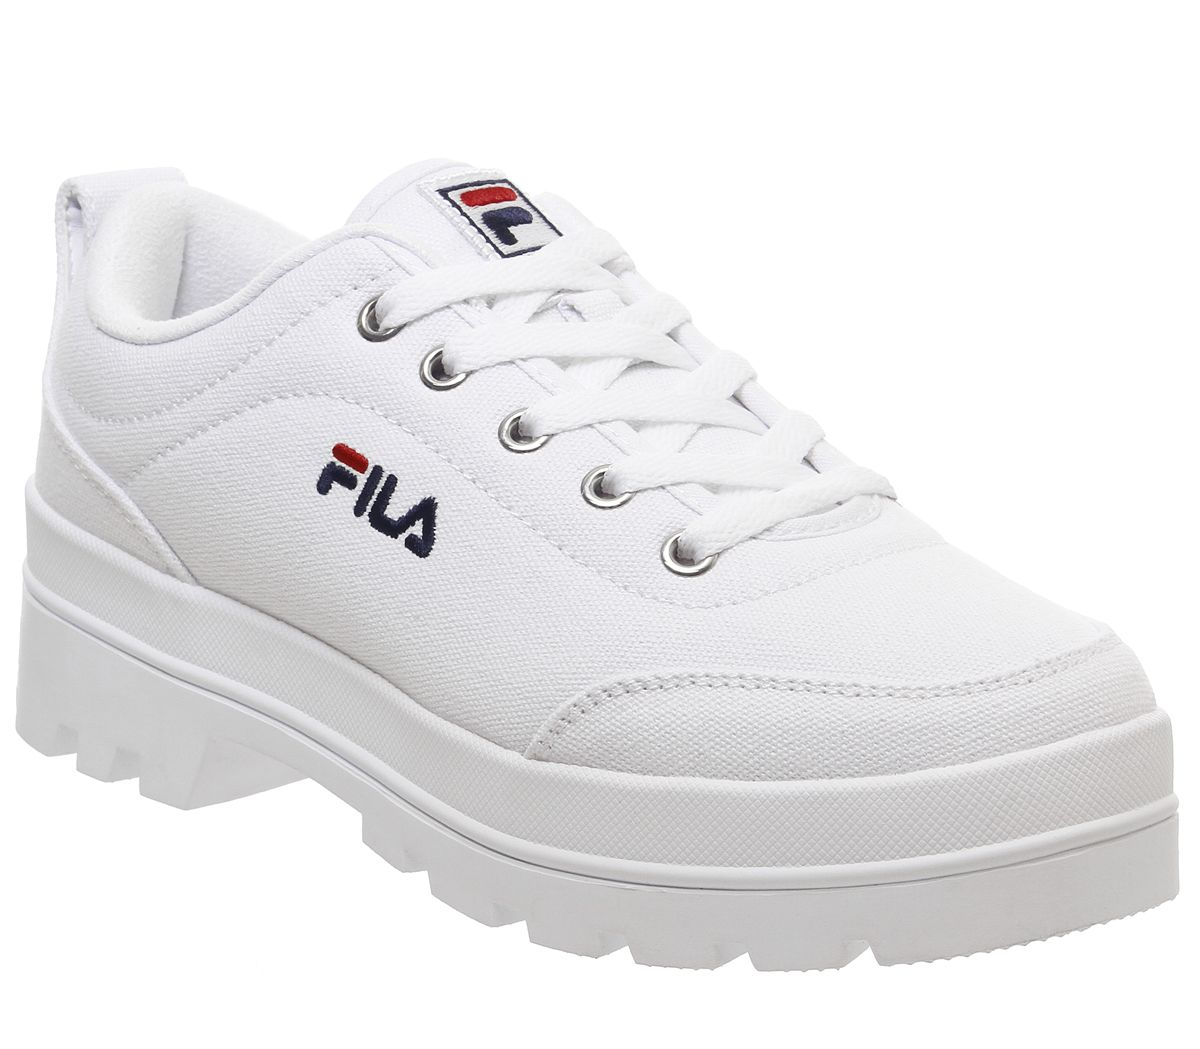 Chaussures Fila Page 24 Achat, Vente Neuf & d'Occasion